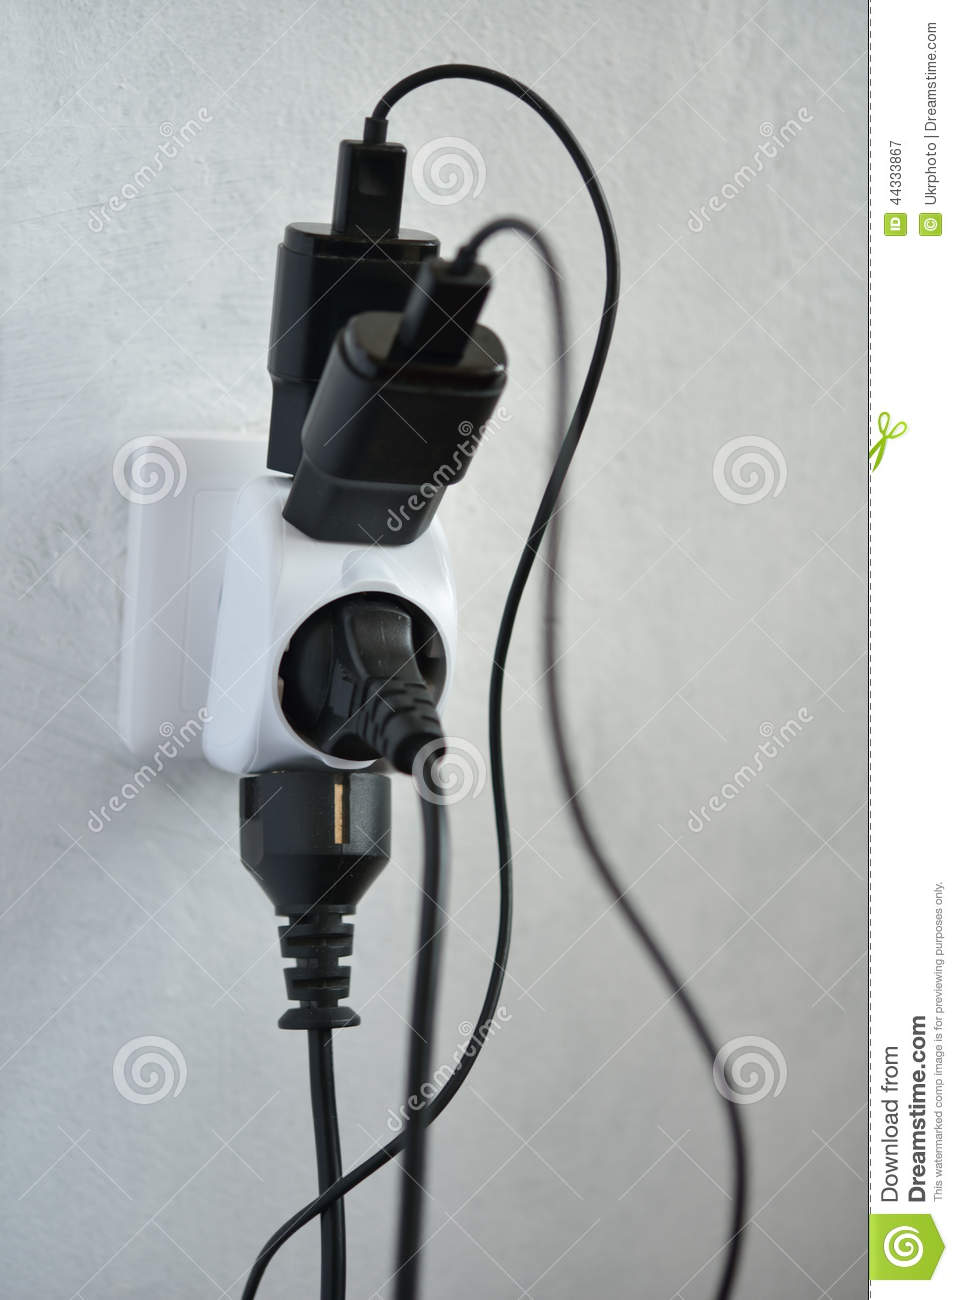 Wiring A Four Plug Outlet Trusted Diagram 4 Electrical Overload Stock Image Of White Indoors 44333867 Gang